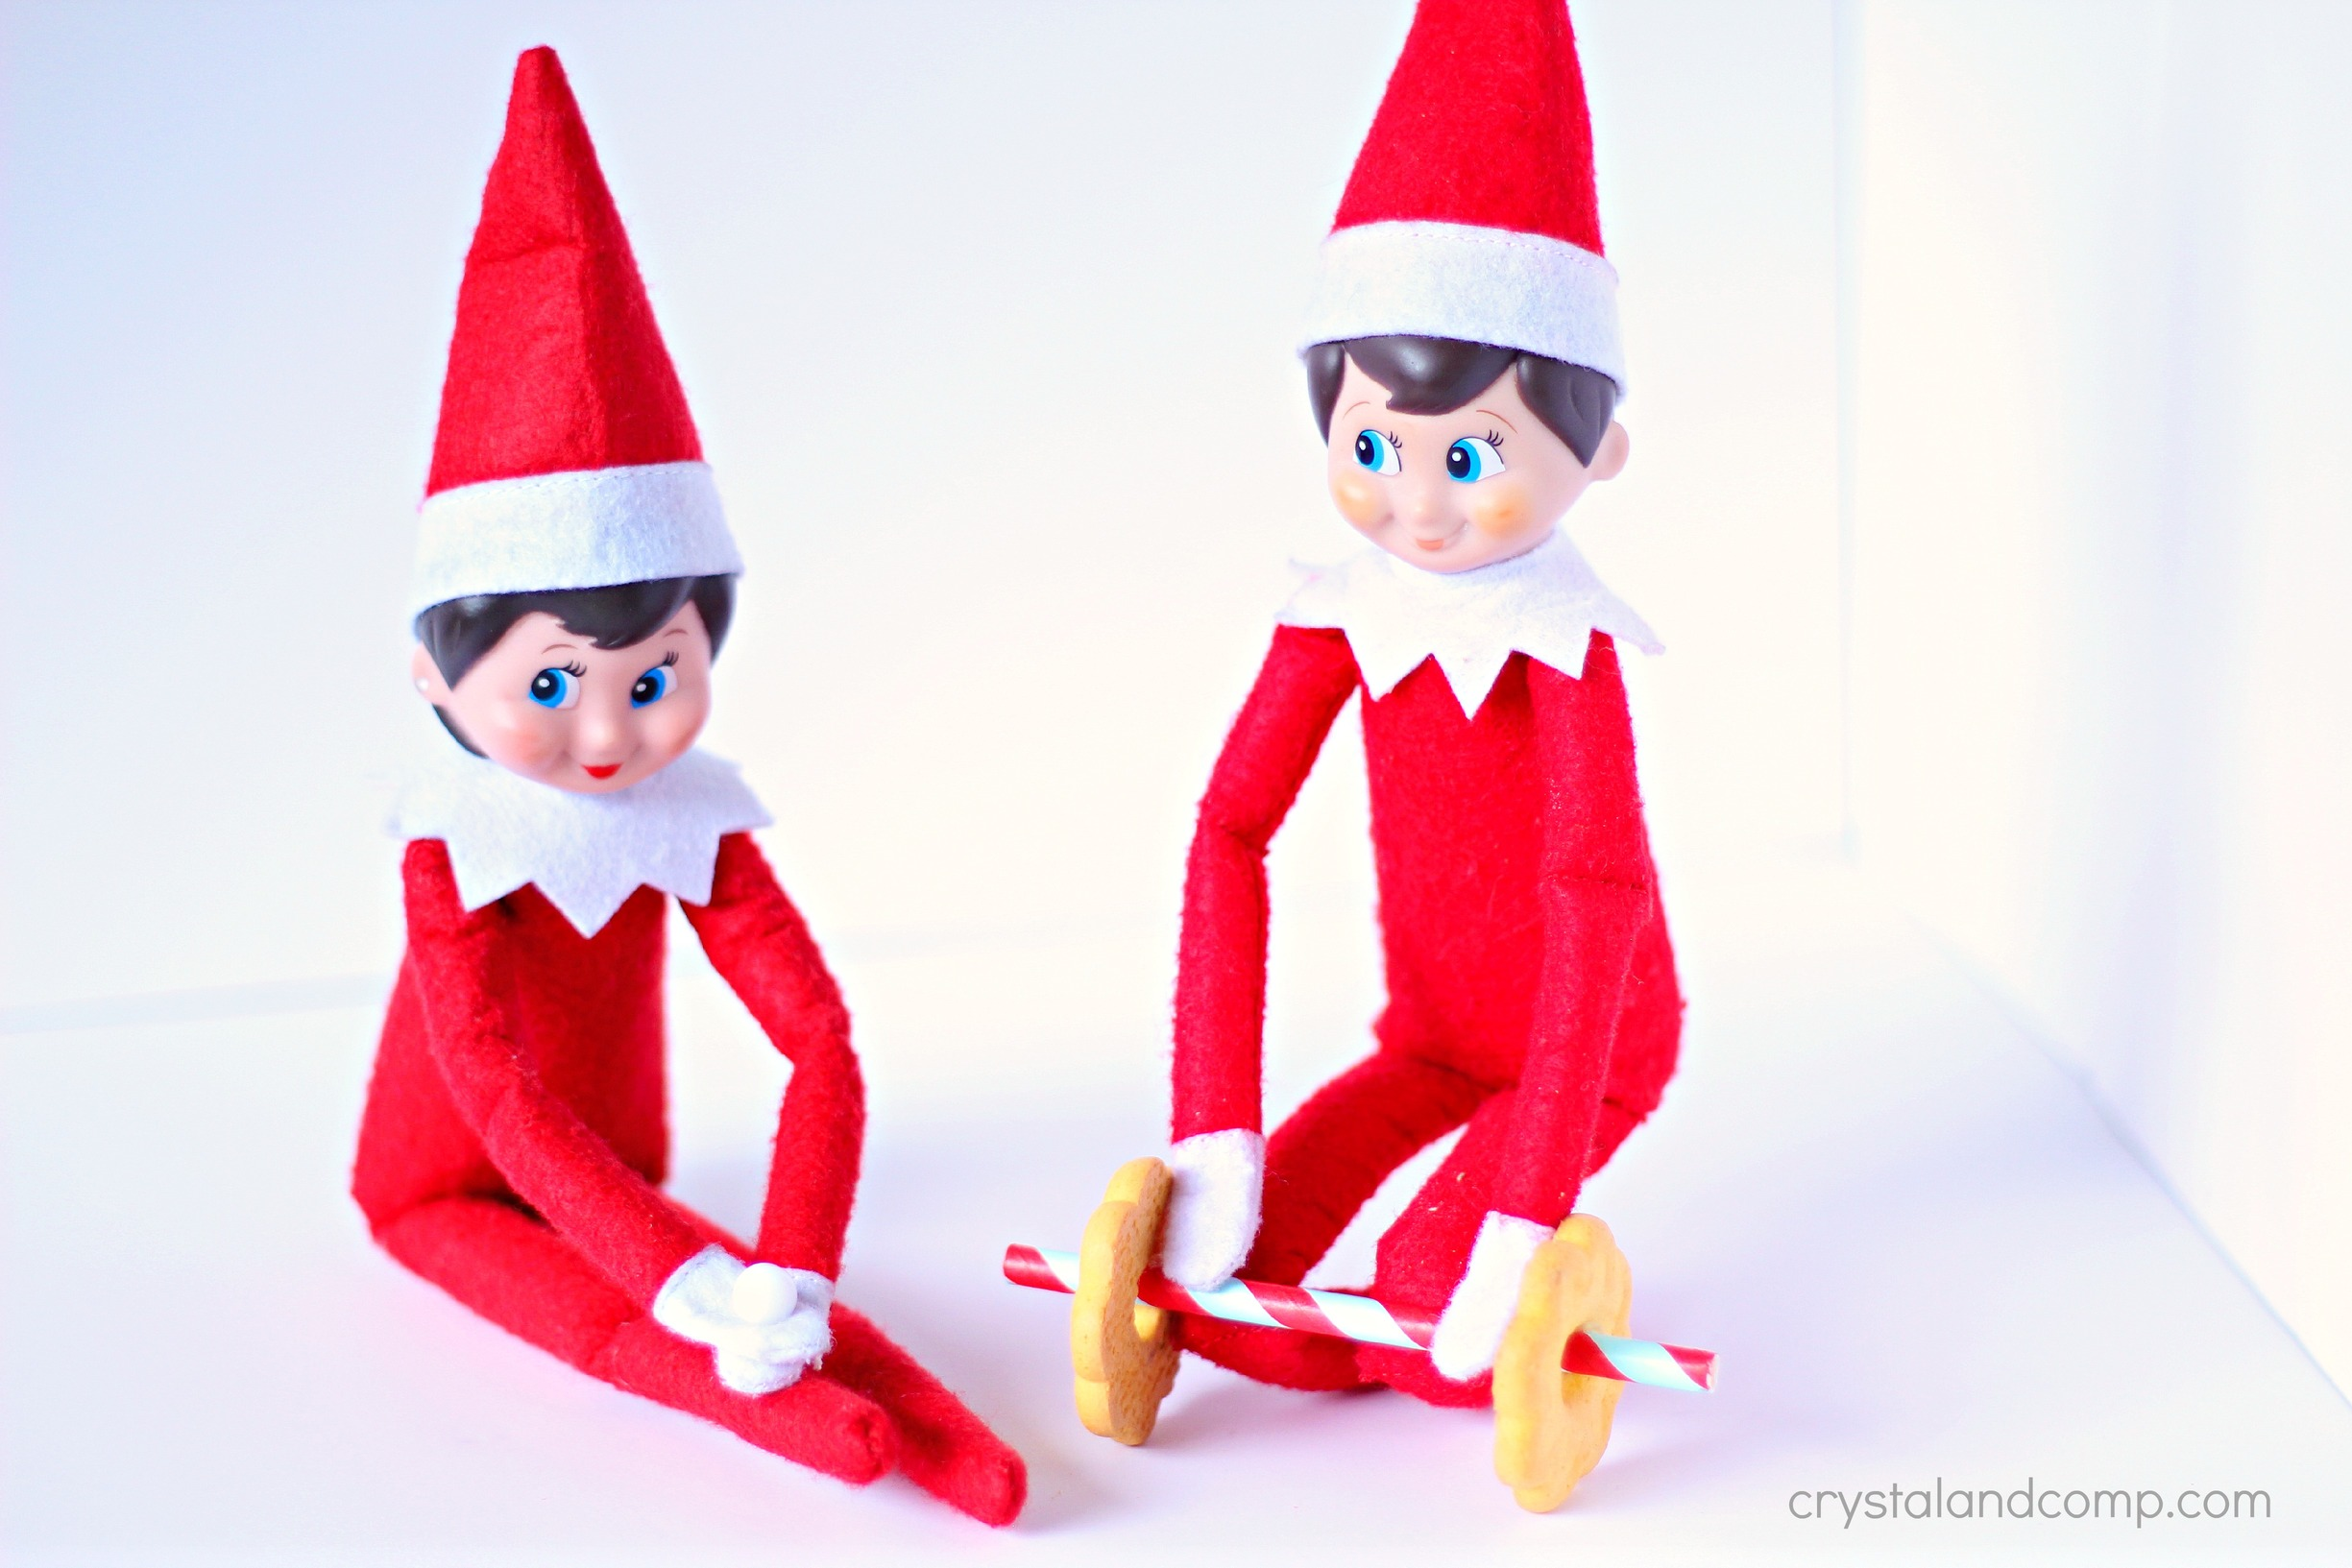 Cookie And Straw Dumbbell Workout Elf On The Shelf